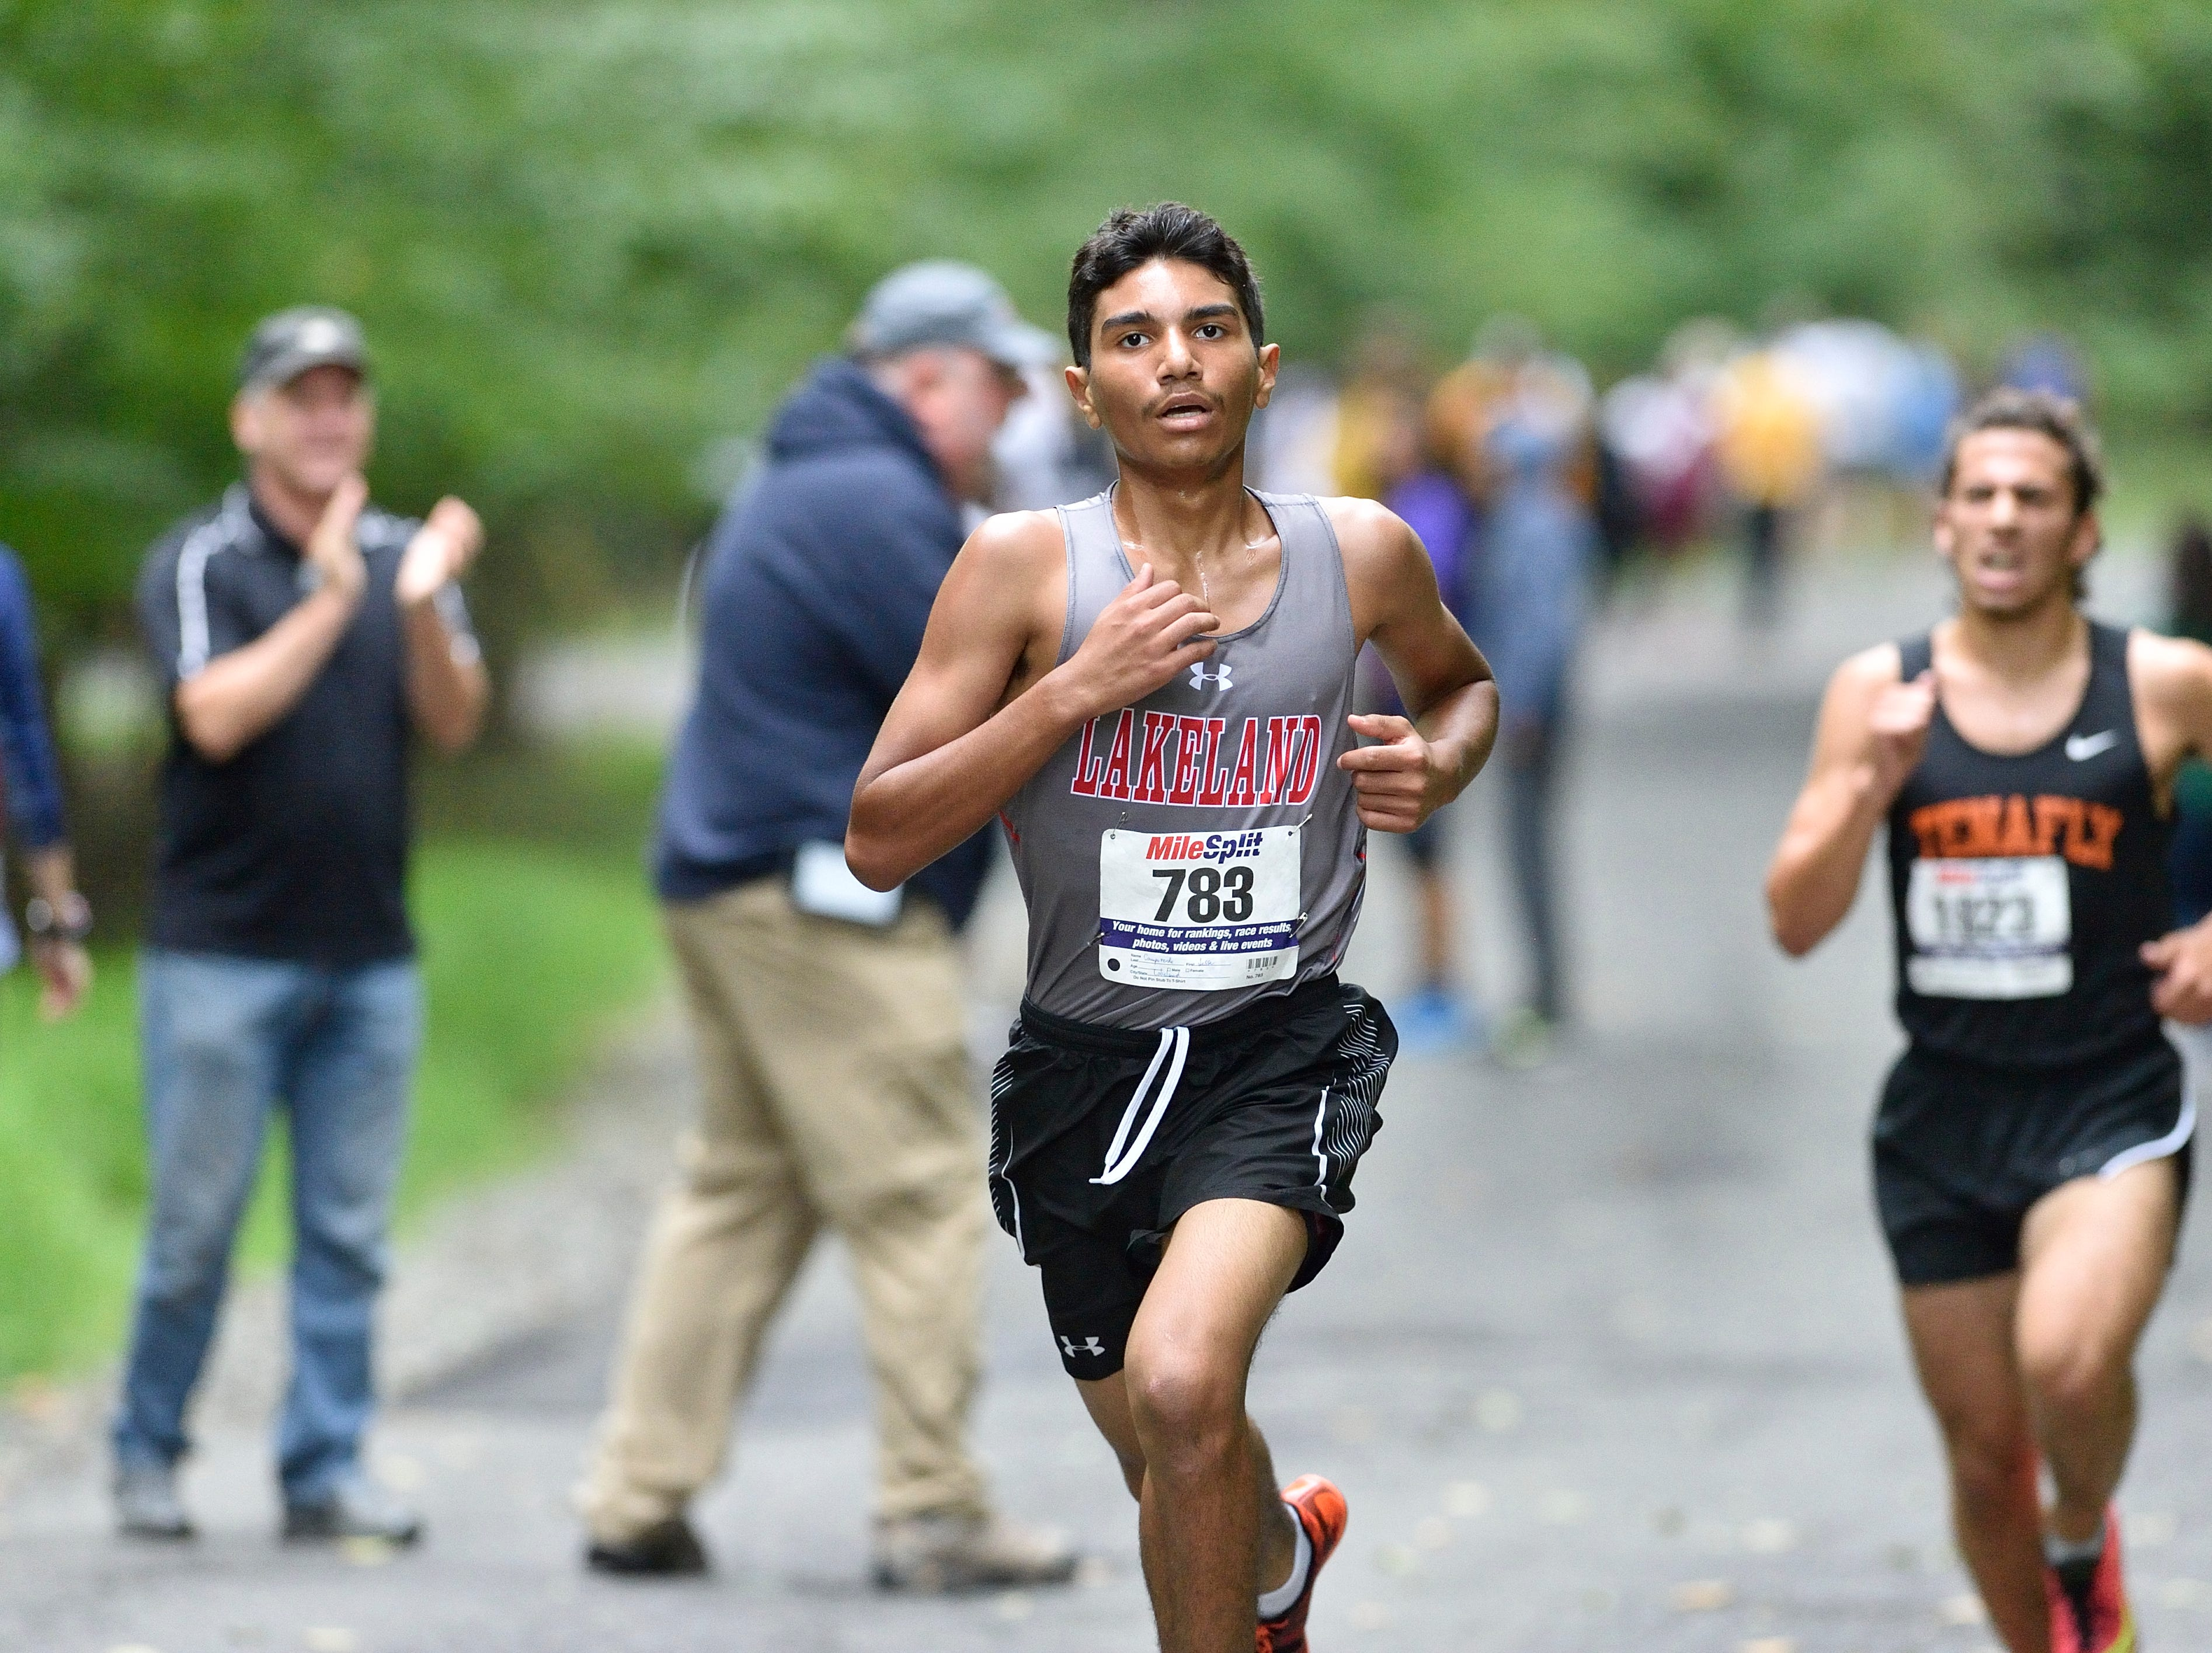 Jesse Campoverde of Lakeland Reg HS competes in the boys varsity B cross country race at Darlington County Park in Mahwah.